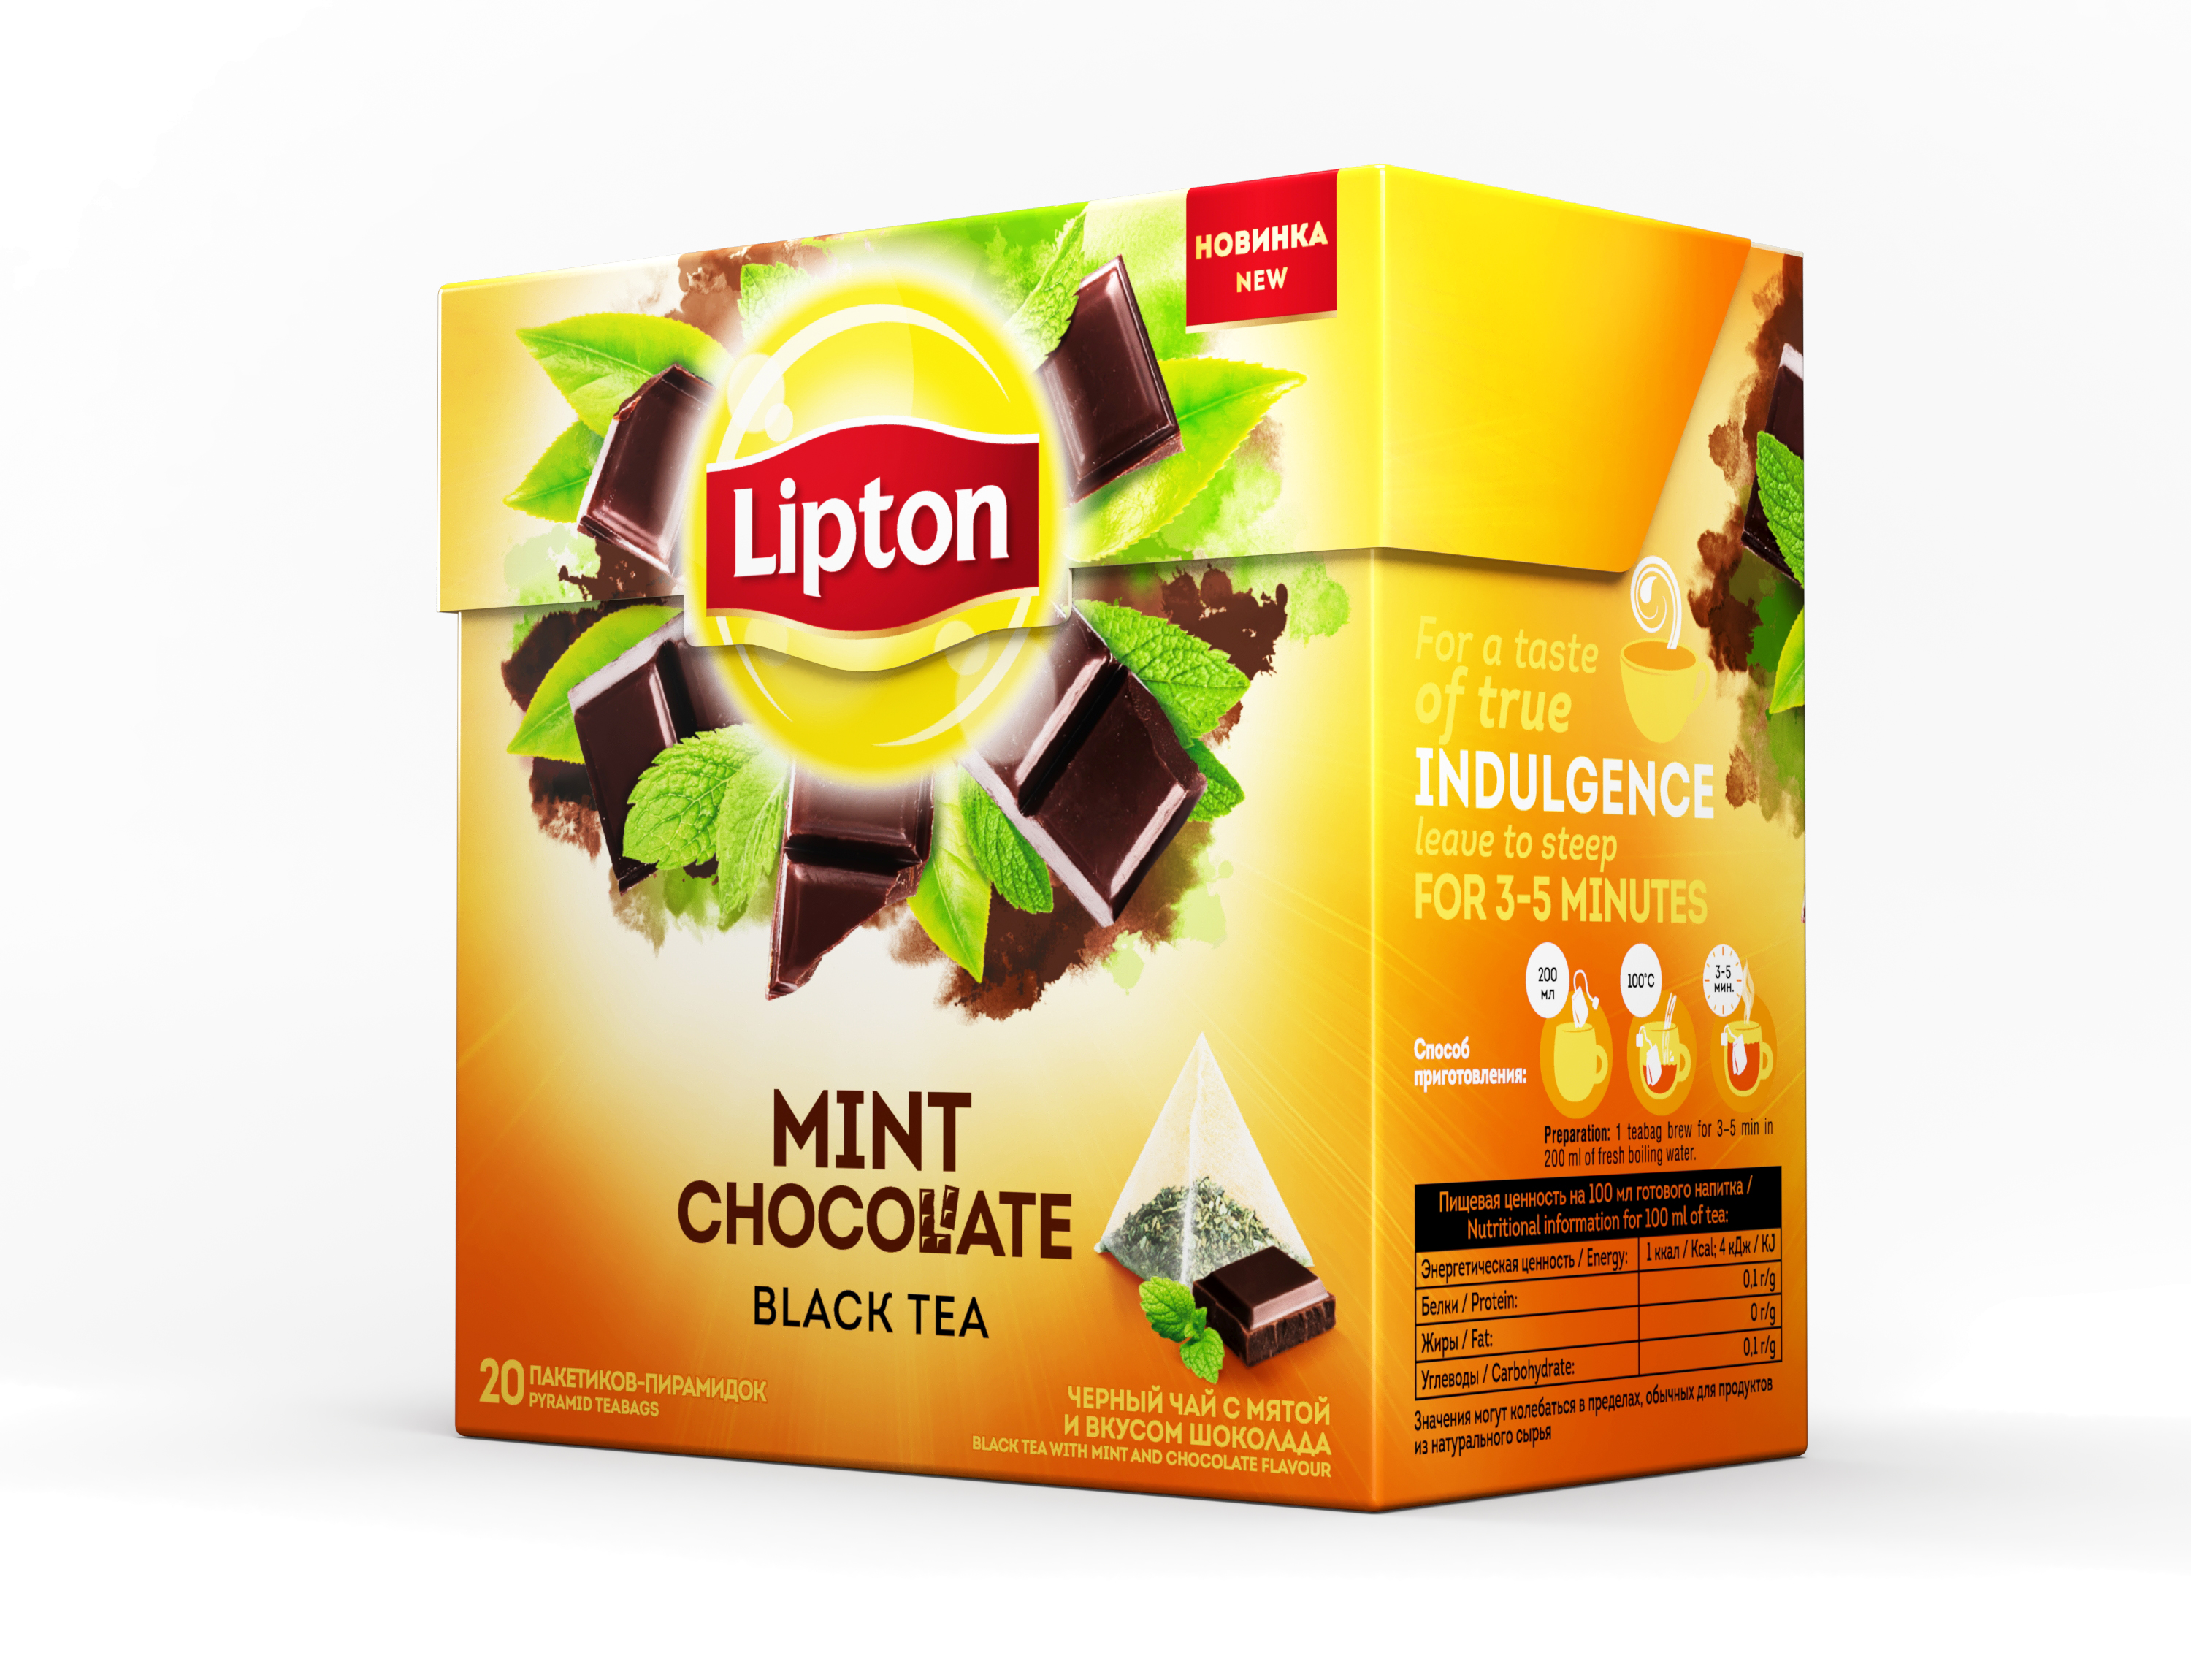 Lipton_Mint-Choclate